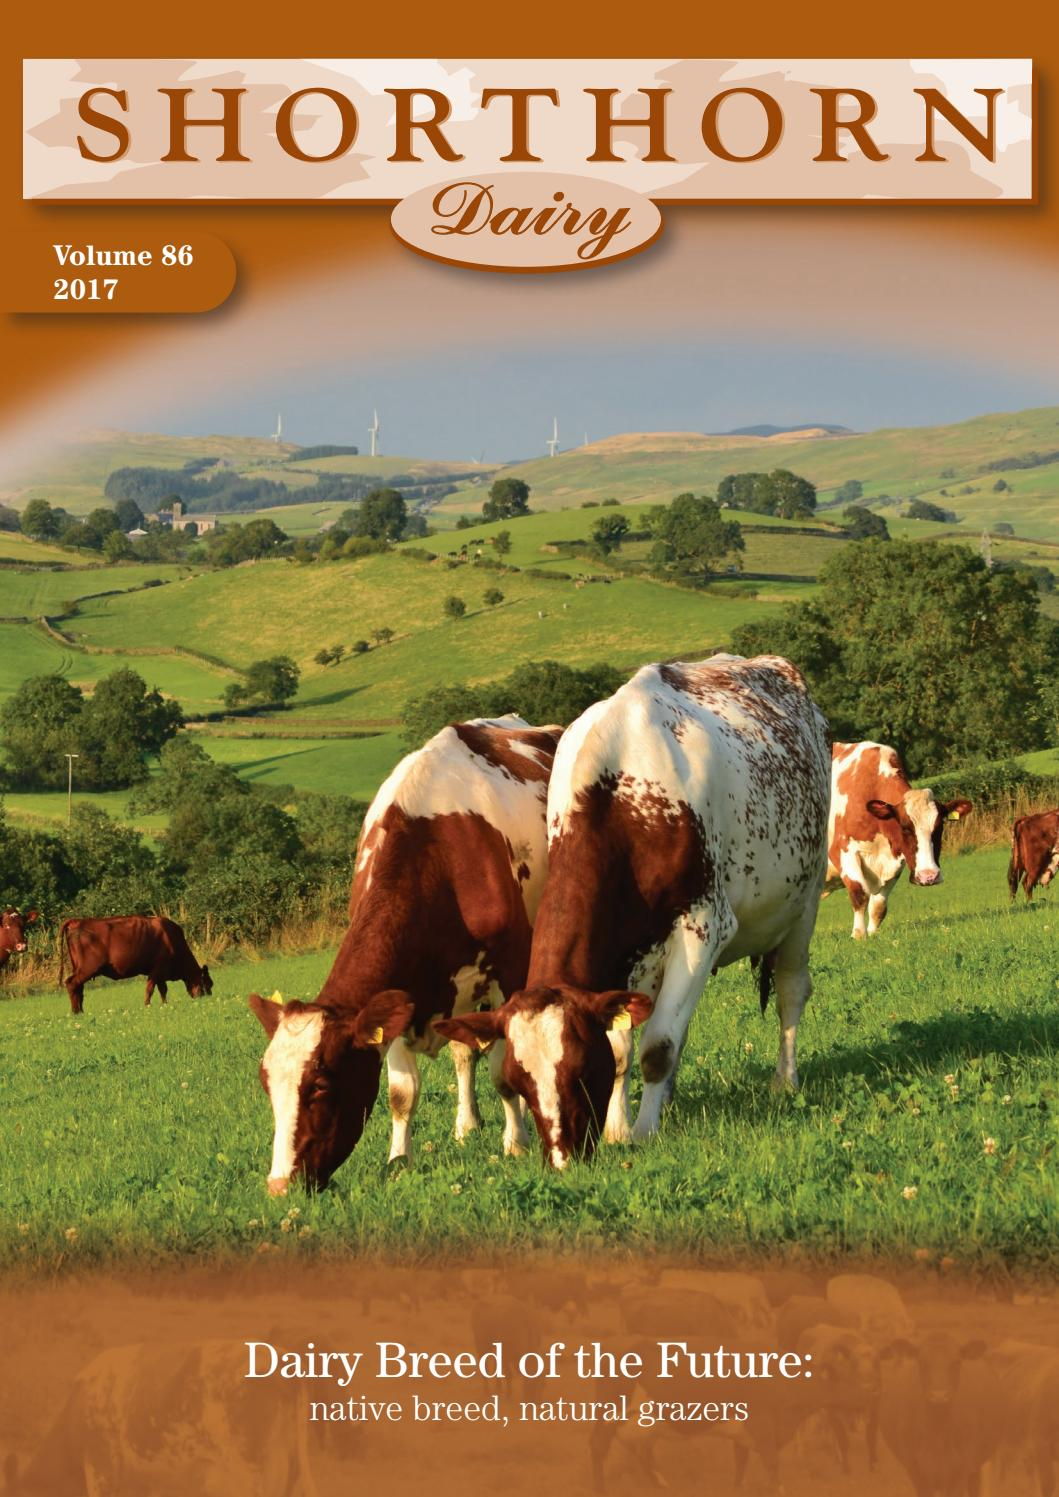 dairy shorthorn journal 2017 by alan peedle